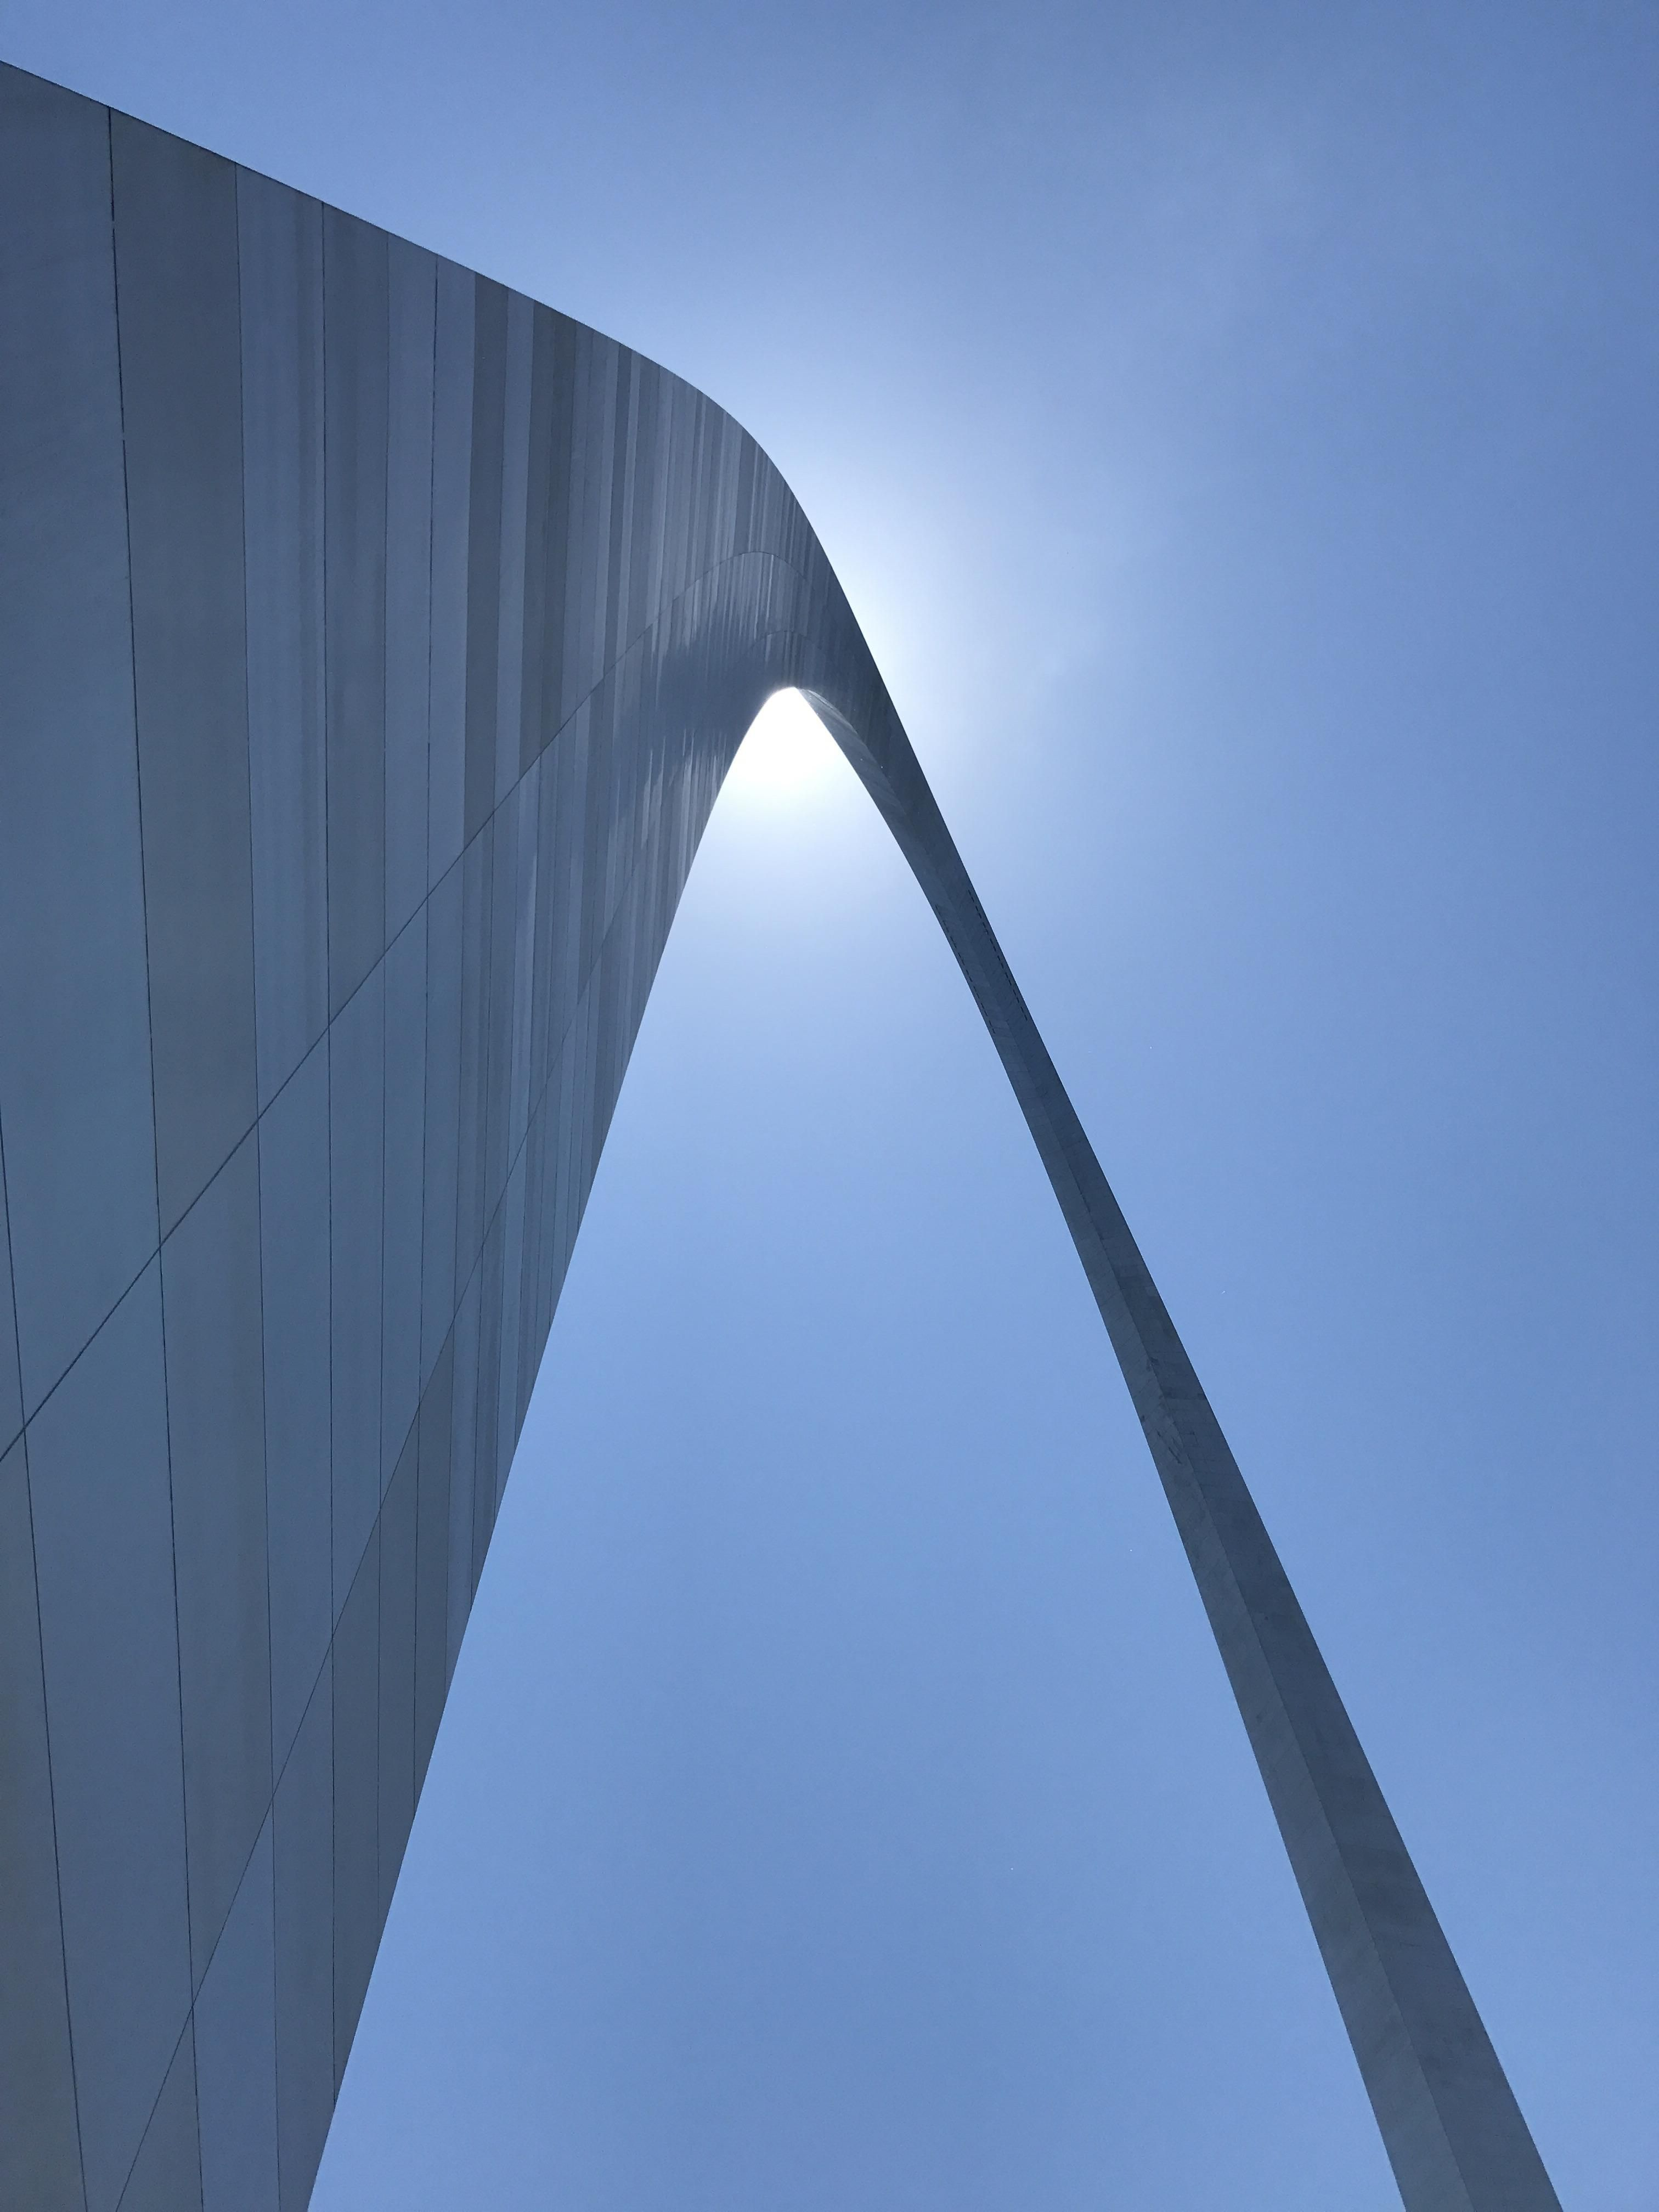 Perfect day at the St Louis arch  Pics  Pinterest  Arch